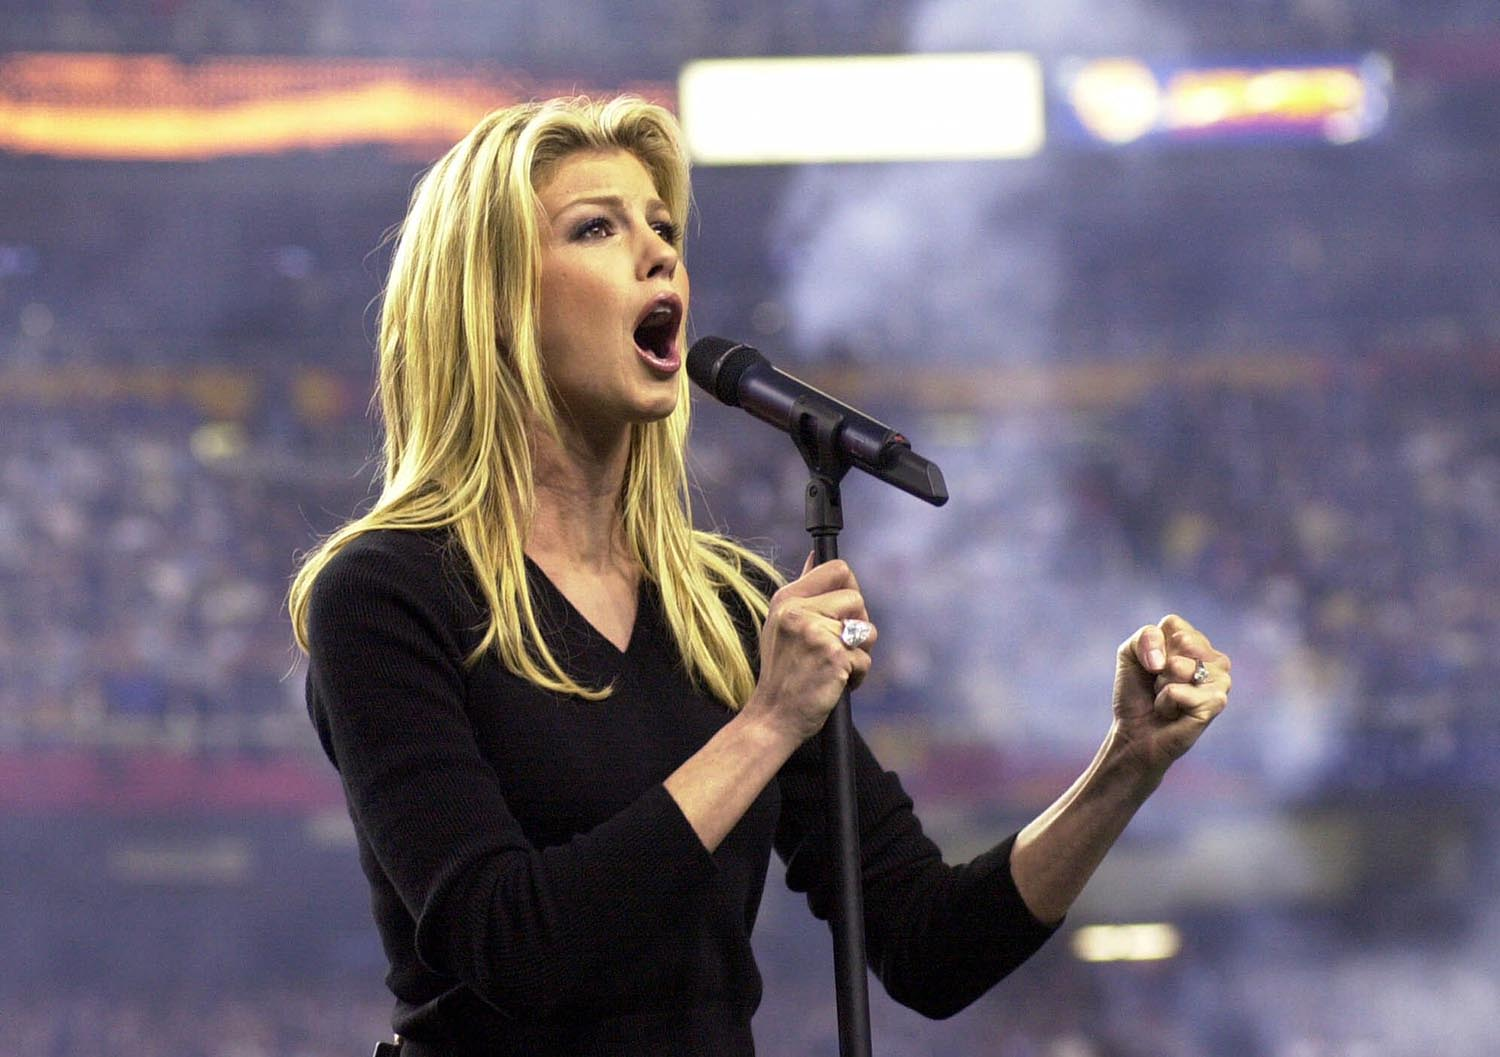 <div class='meta'><div class='origin-logo' data-origin='AP'></div><span class='caption-text' data-credit='AP Photo/Dave Martin'>2000: Country singing star Faith Hill sings the national anthem before the start of Super Bowl XXXIV in Atlanta, Sunday Jan.30, 2000.</span></div>